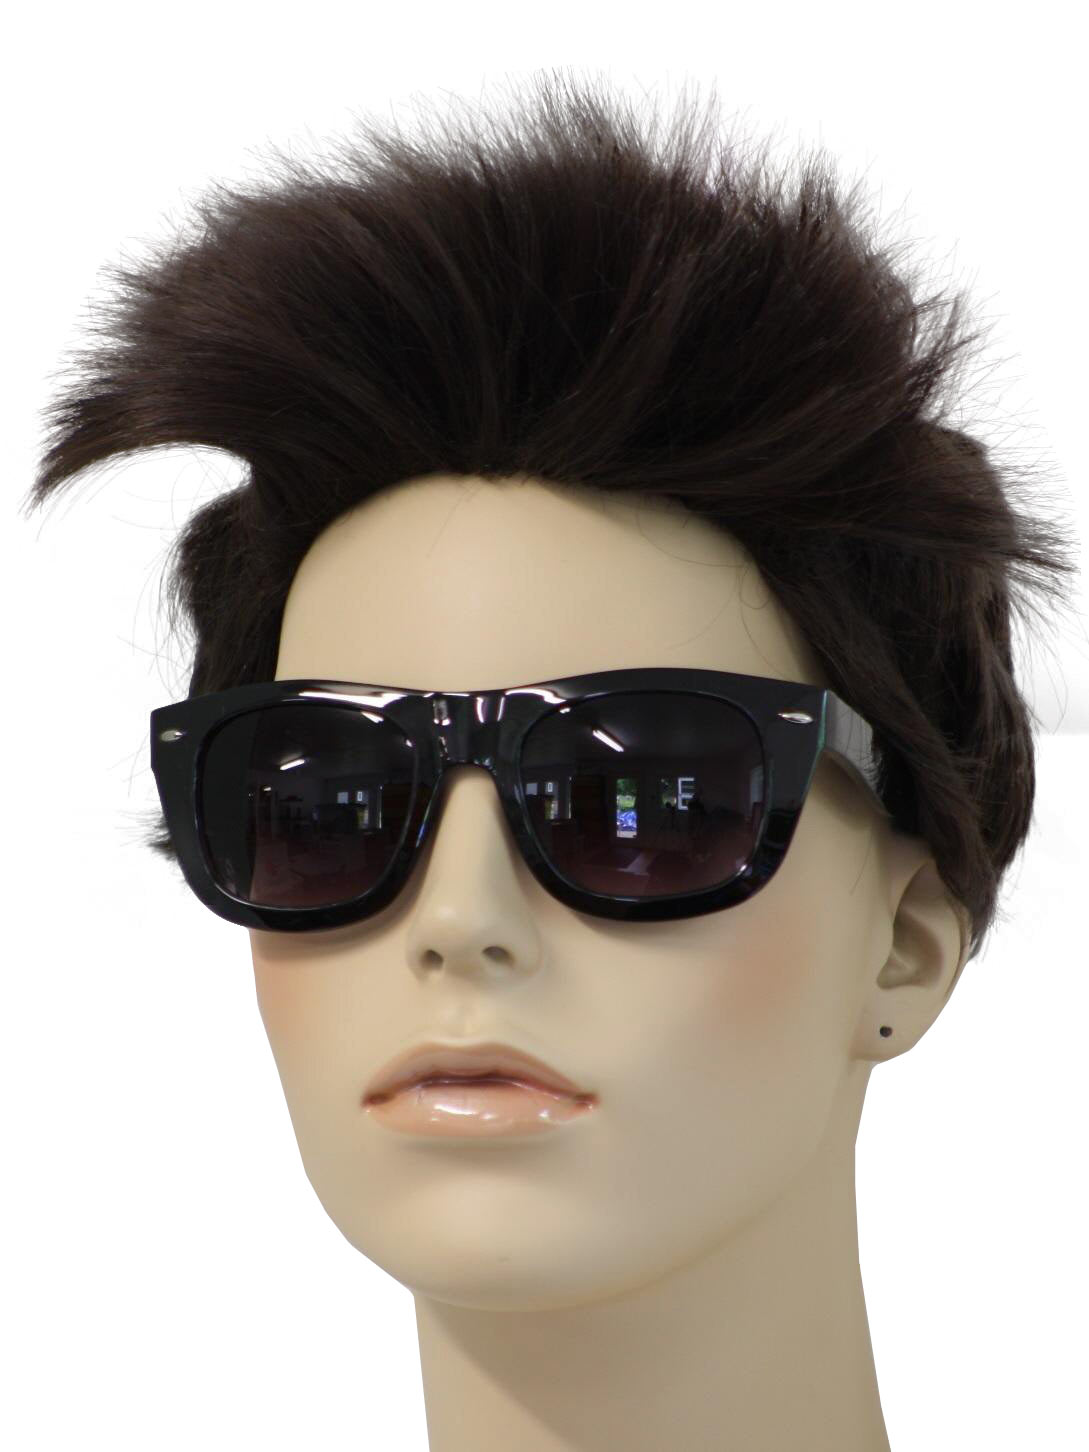 361840a0037a Eighties Vintage Glasses: 80s style (made new recently) -Kiss ...